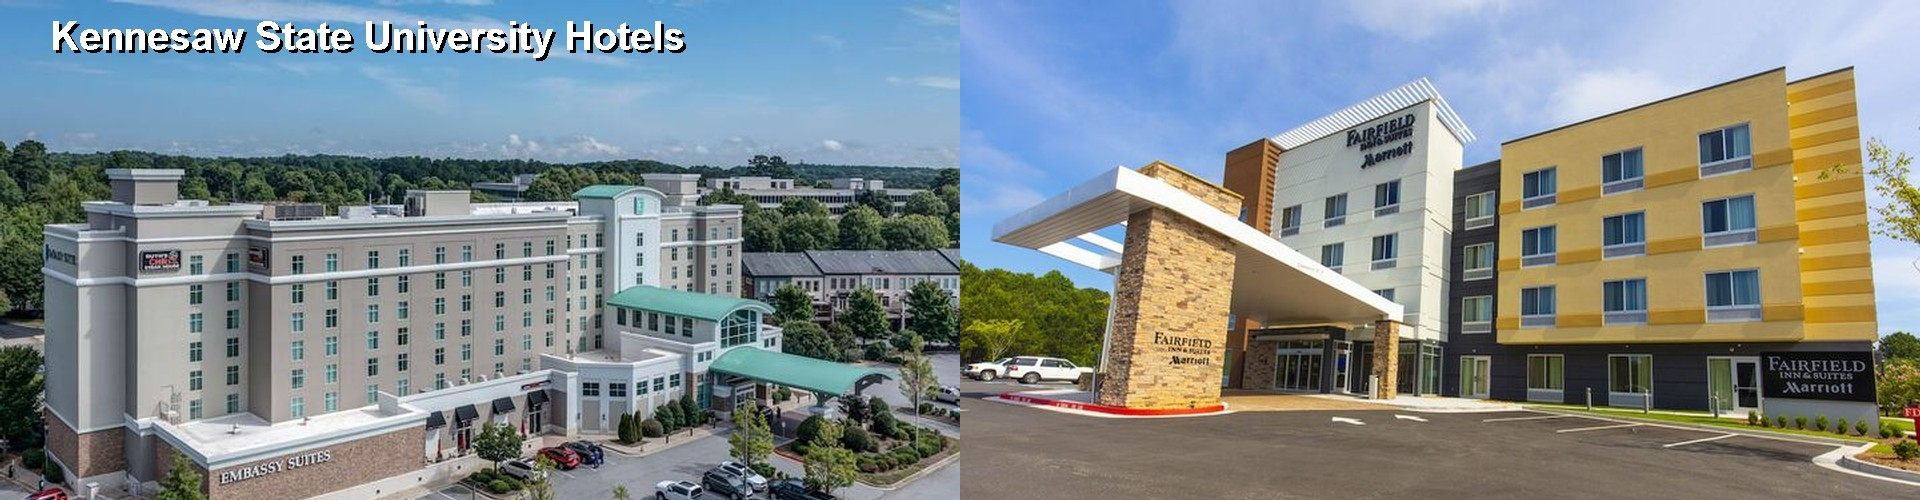 Hotels Near Kennesaw State University